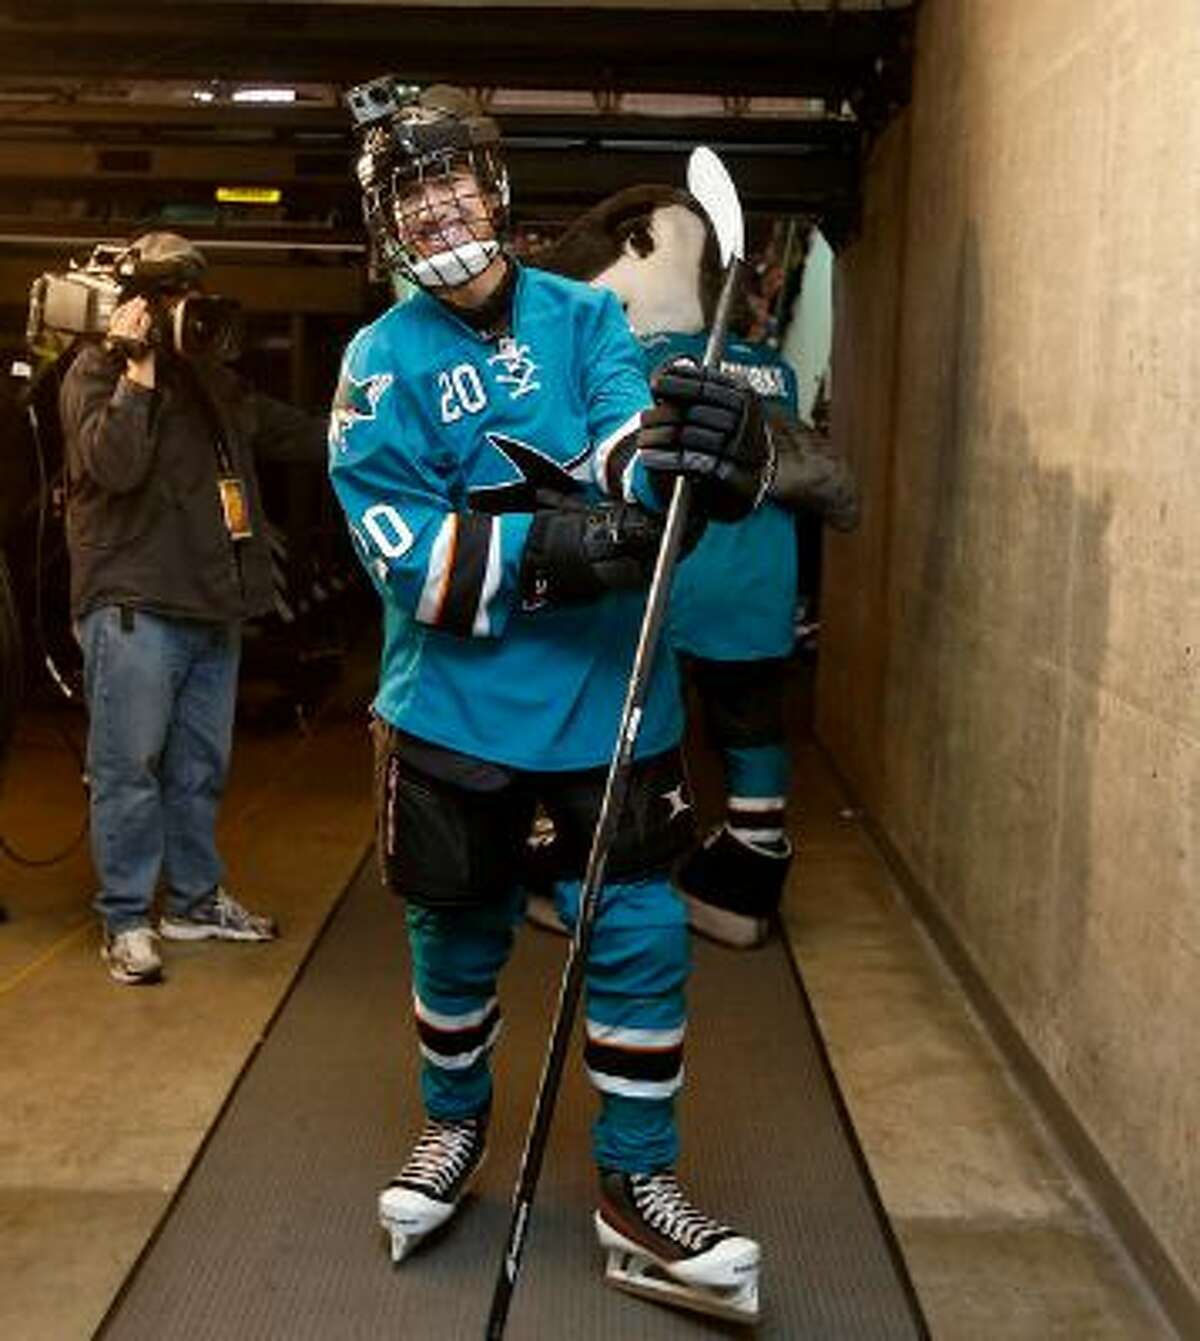 Sam Tageson, 18-year-old youth hockey player from Martinez with a life-threatening heart condition is getting a taste of life in the NHL through the Make-A-Wish Foundation and the Sharks Foundation. Tageson skated out to ice with the San Jose Sharks during opening ceremony at SAP Center in San Jose, Calif. on Tuesday, March 18, 2014. (Josie Lepe/Bay Area News Group)